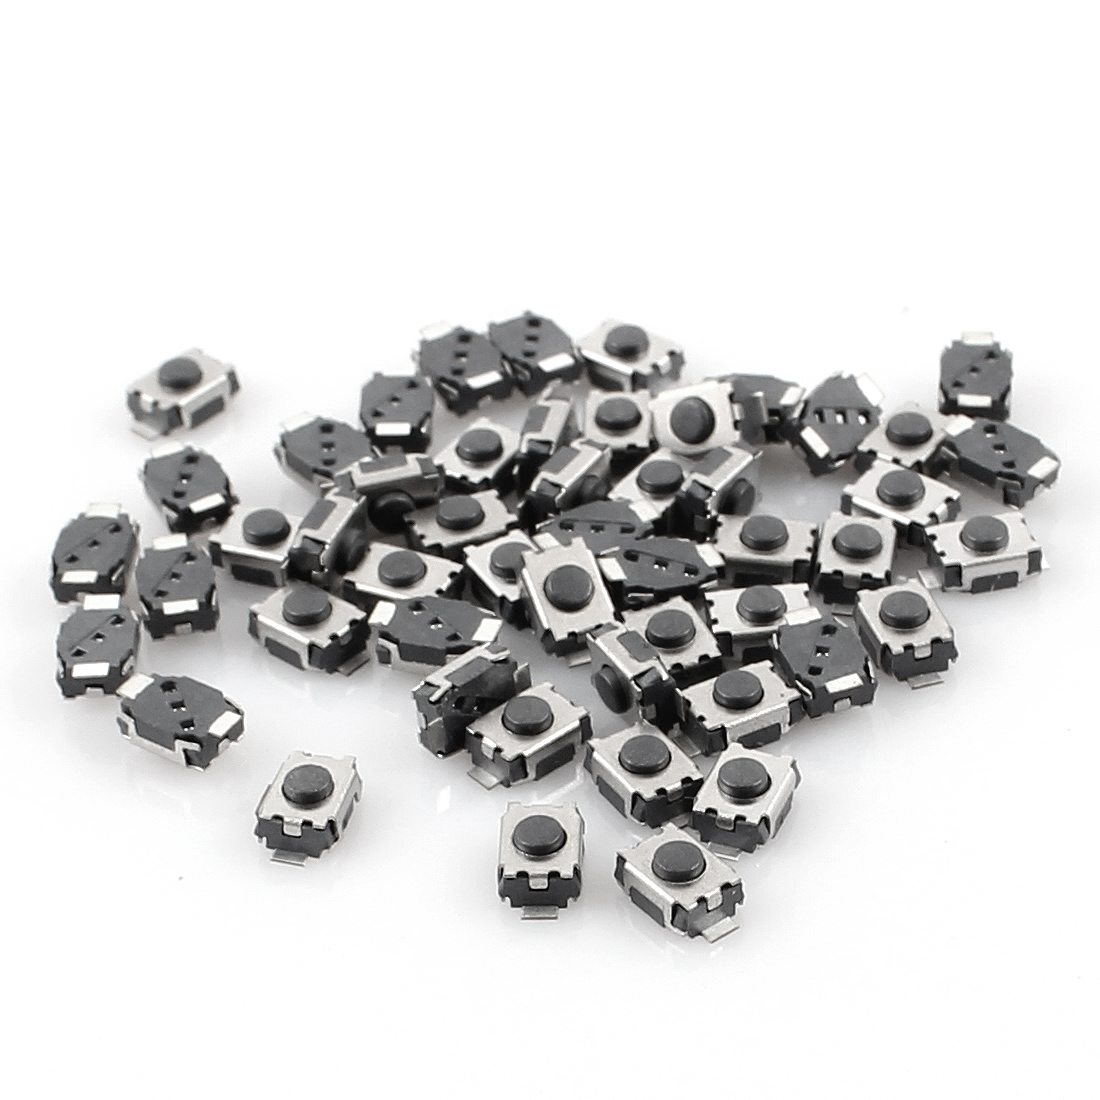 50 Pcs 4mm x 3mm Momentary SMD SMT Tactile Tact Push Button Switch